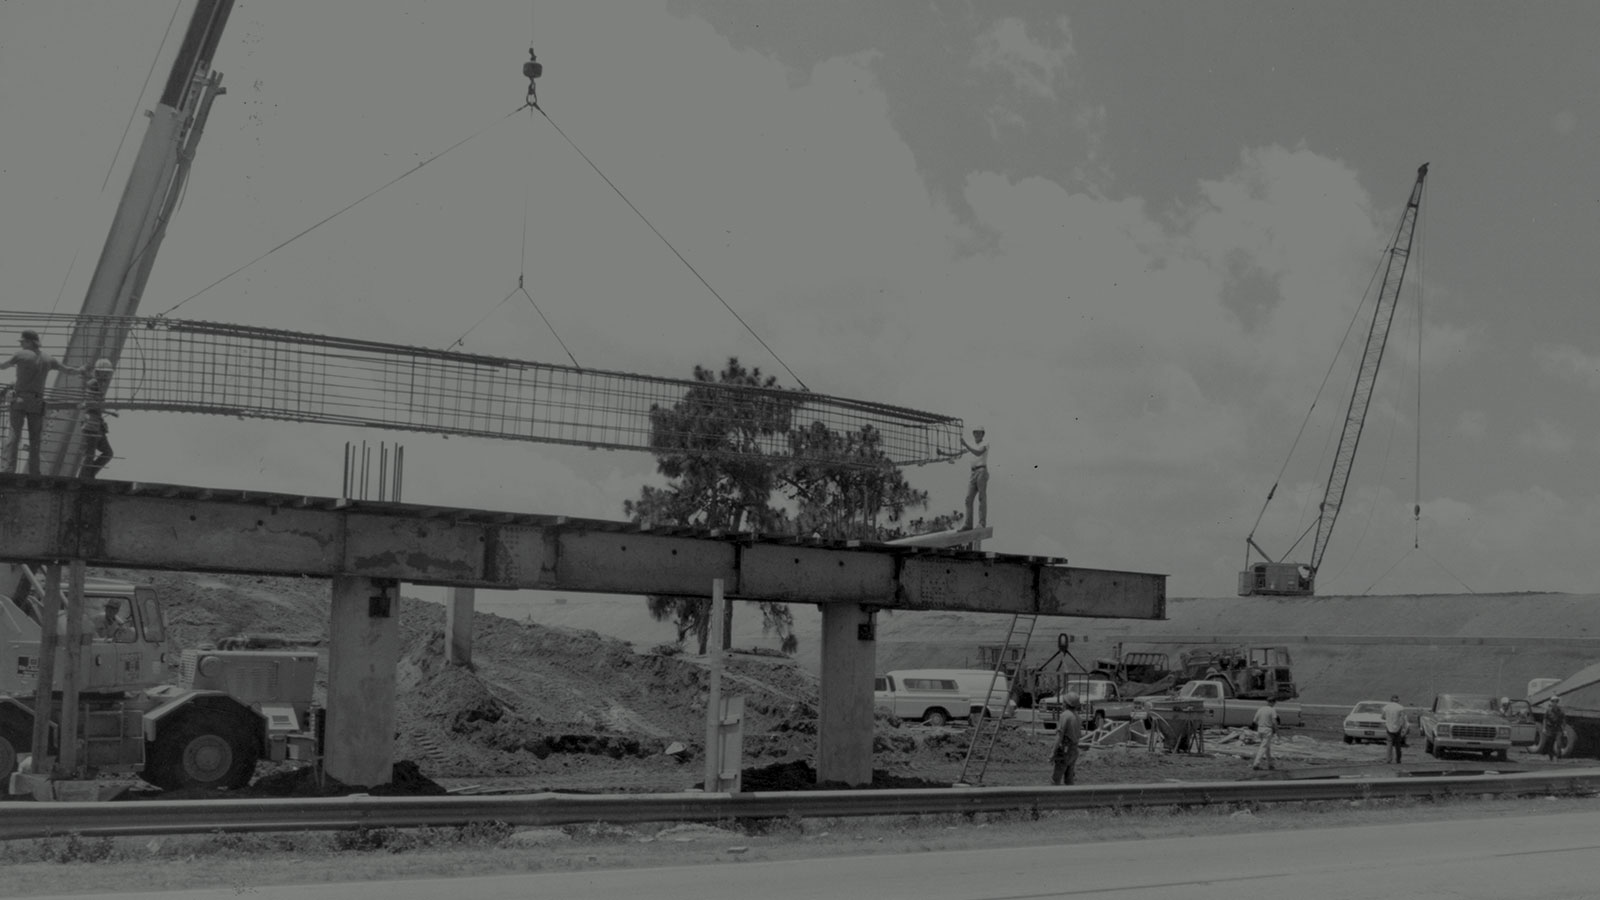 Construction of steel and concrete support structure for Central Florida Expressway toll road 528